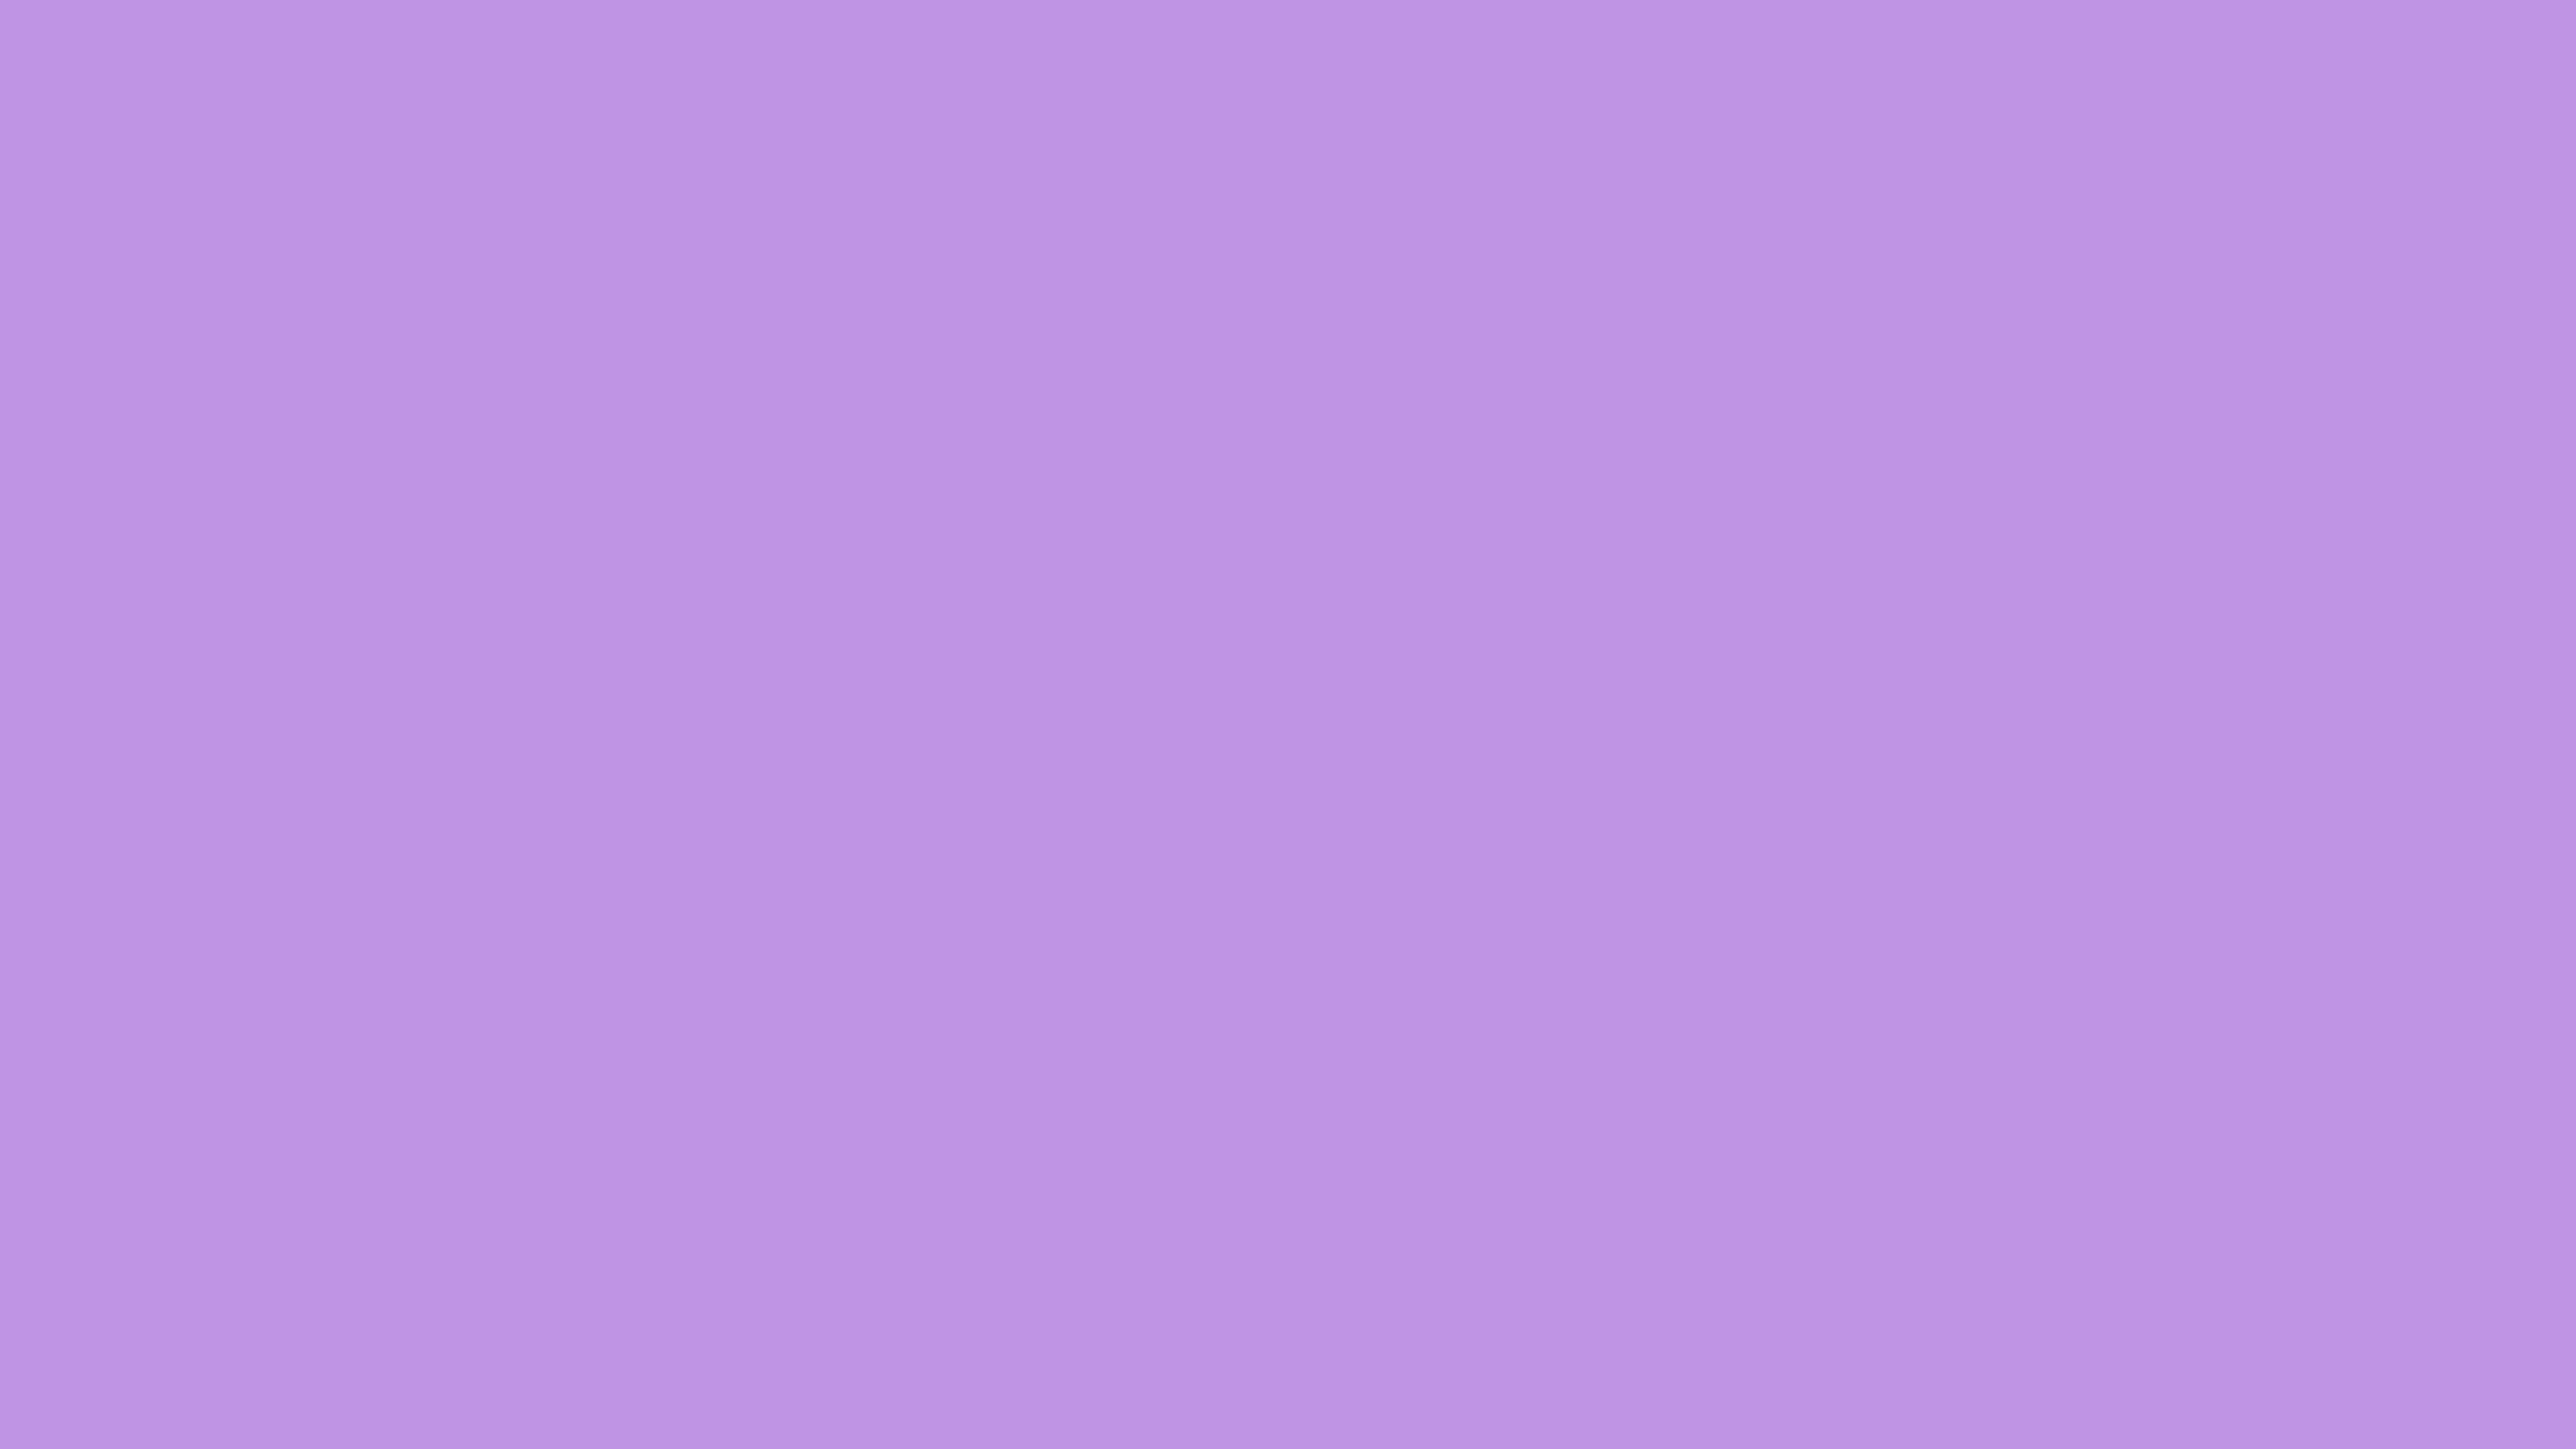 4096x2304 Bright Lavender Solid Color Background